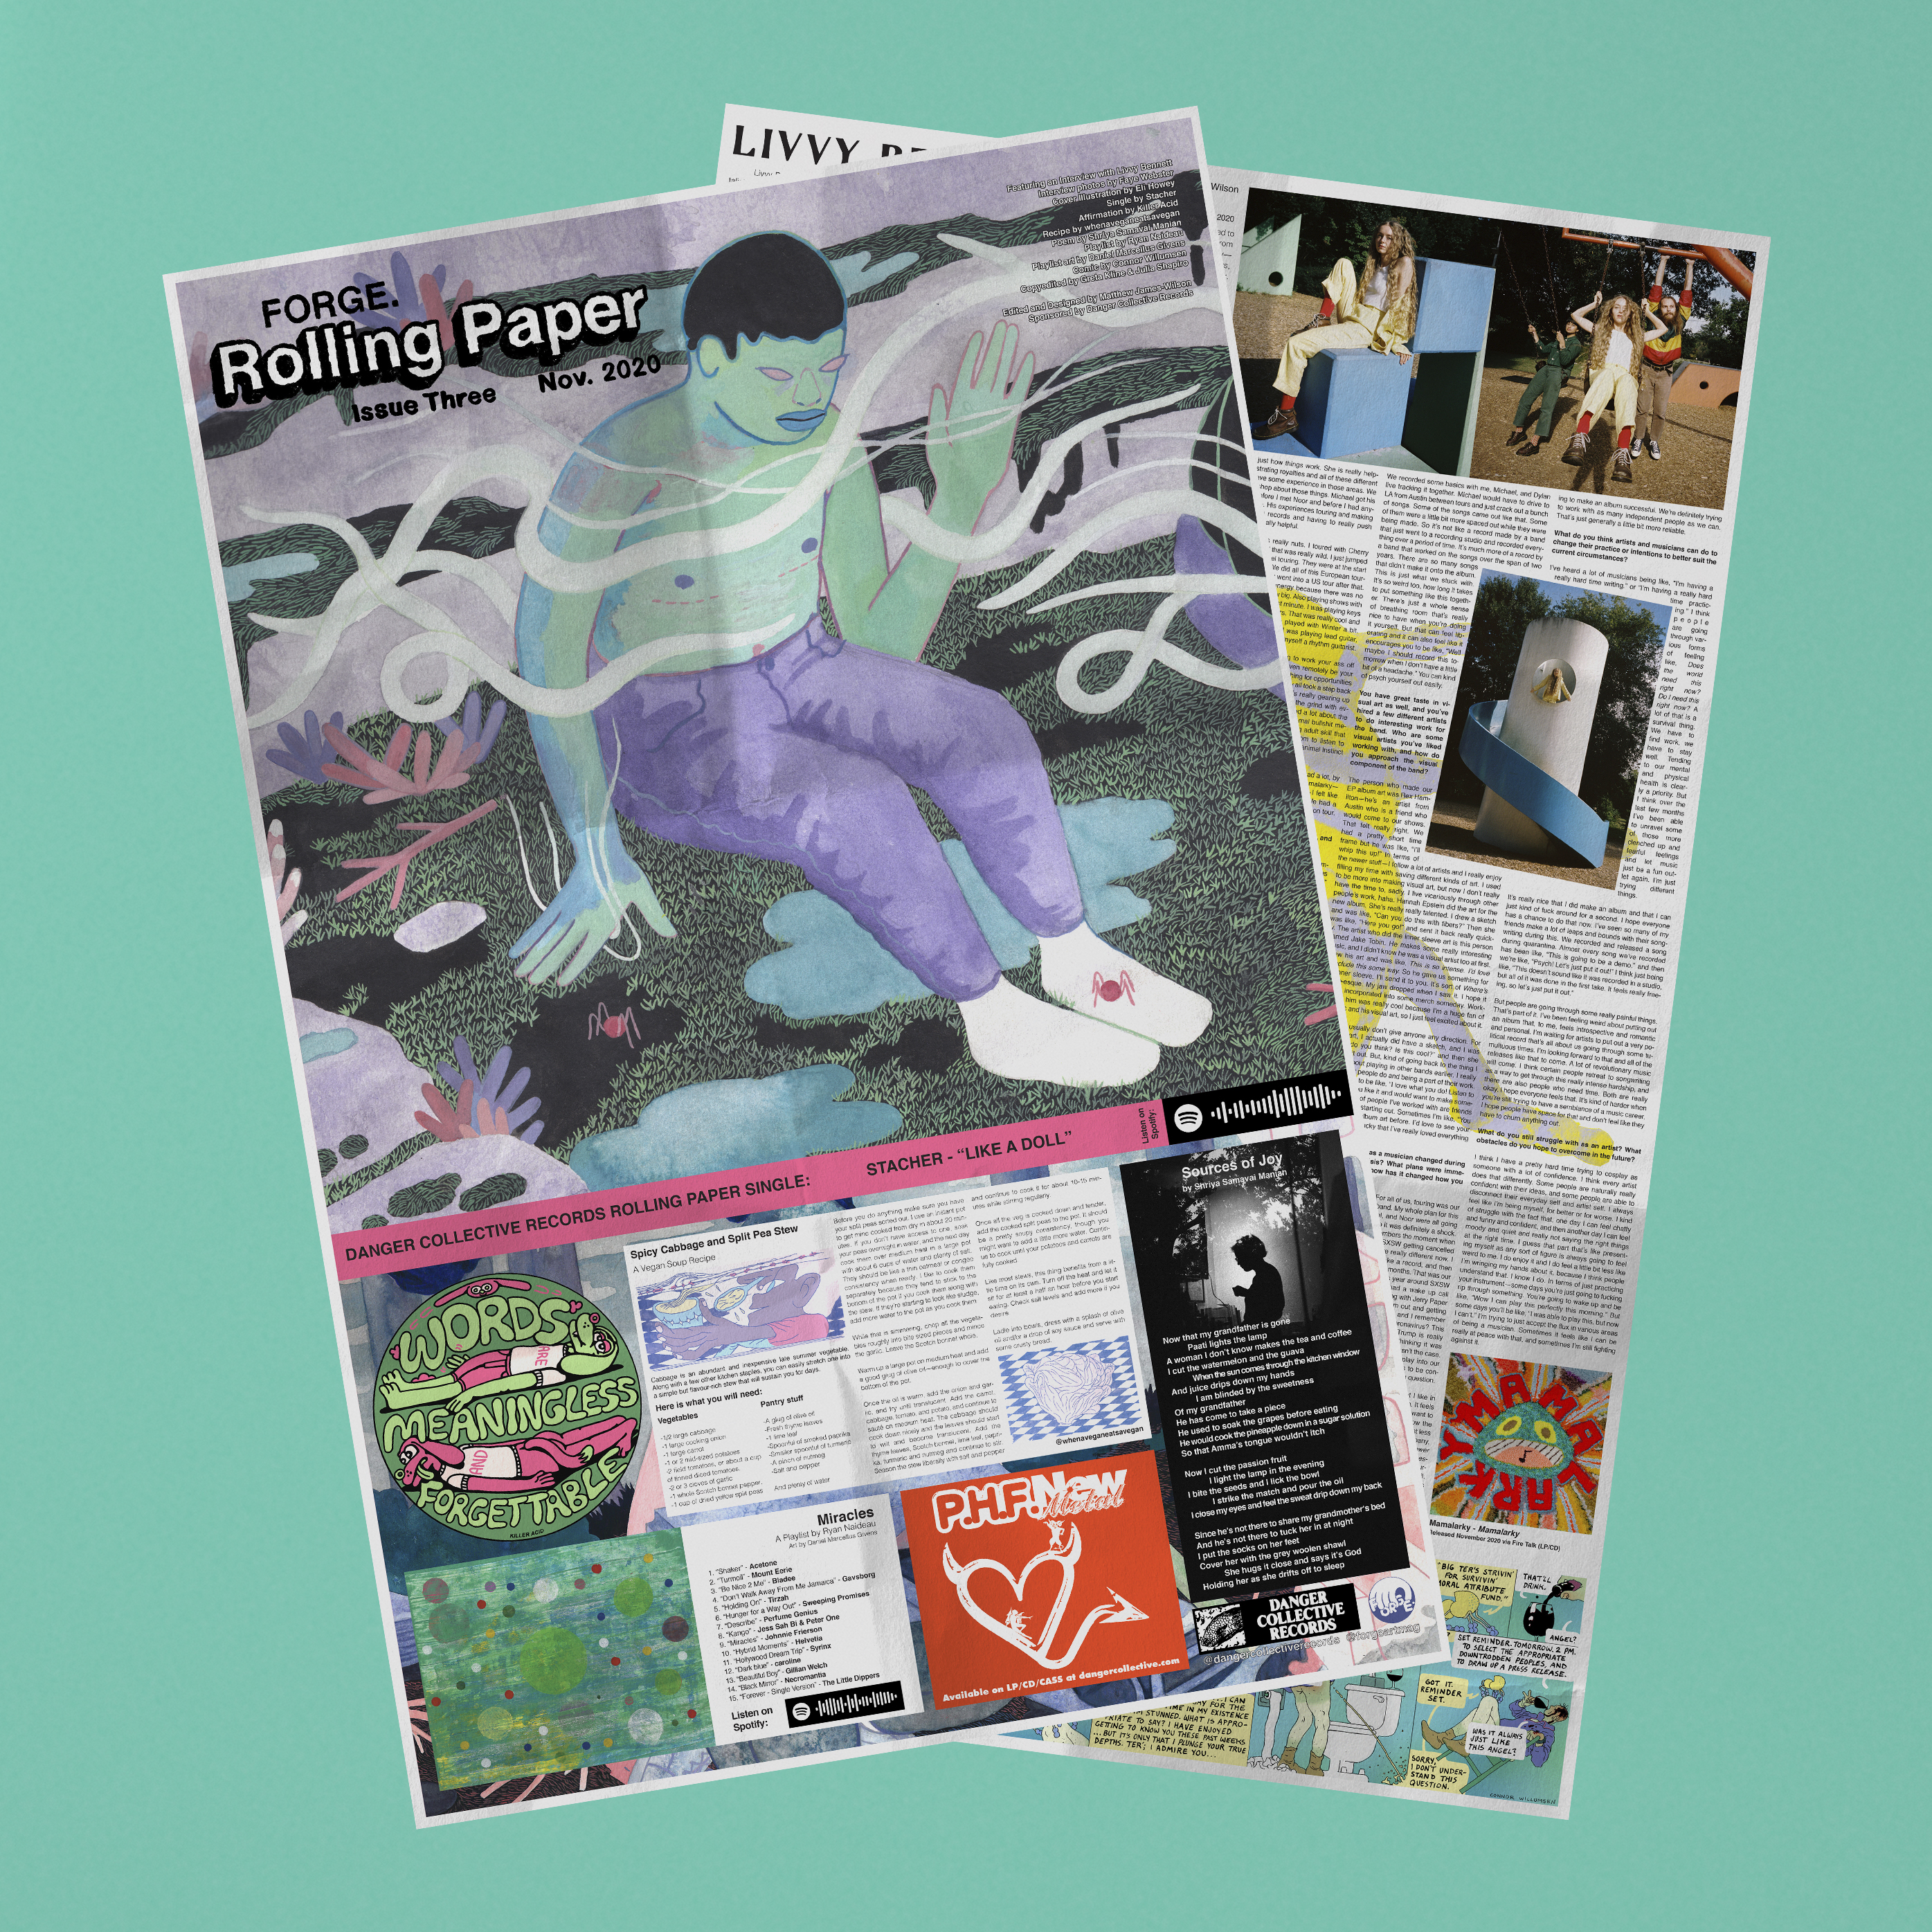 FORGE Rolling Paper Issue Three (Two Copies)